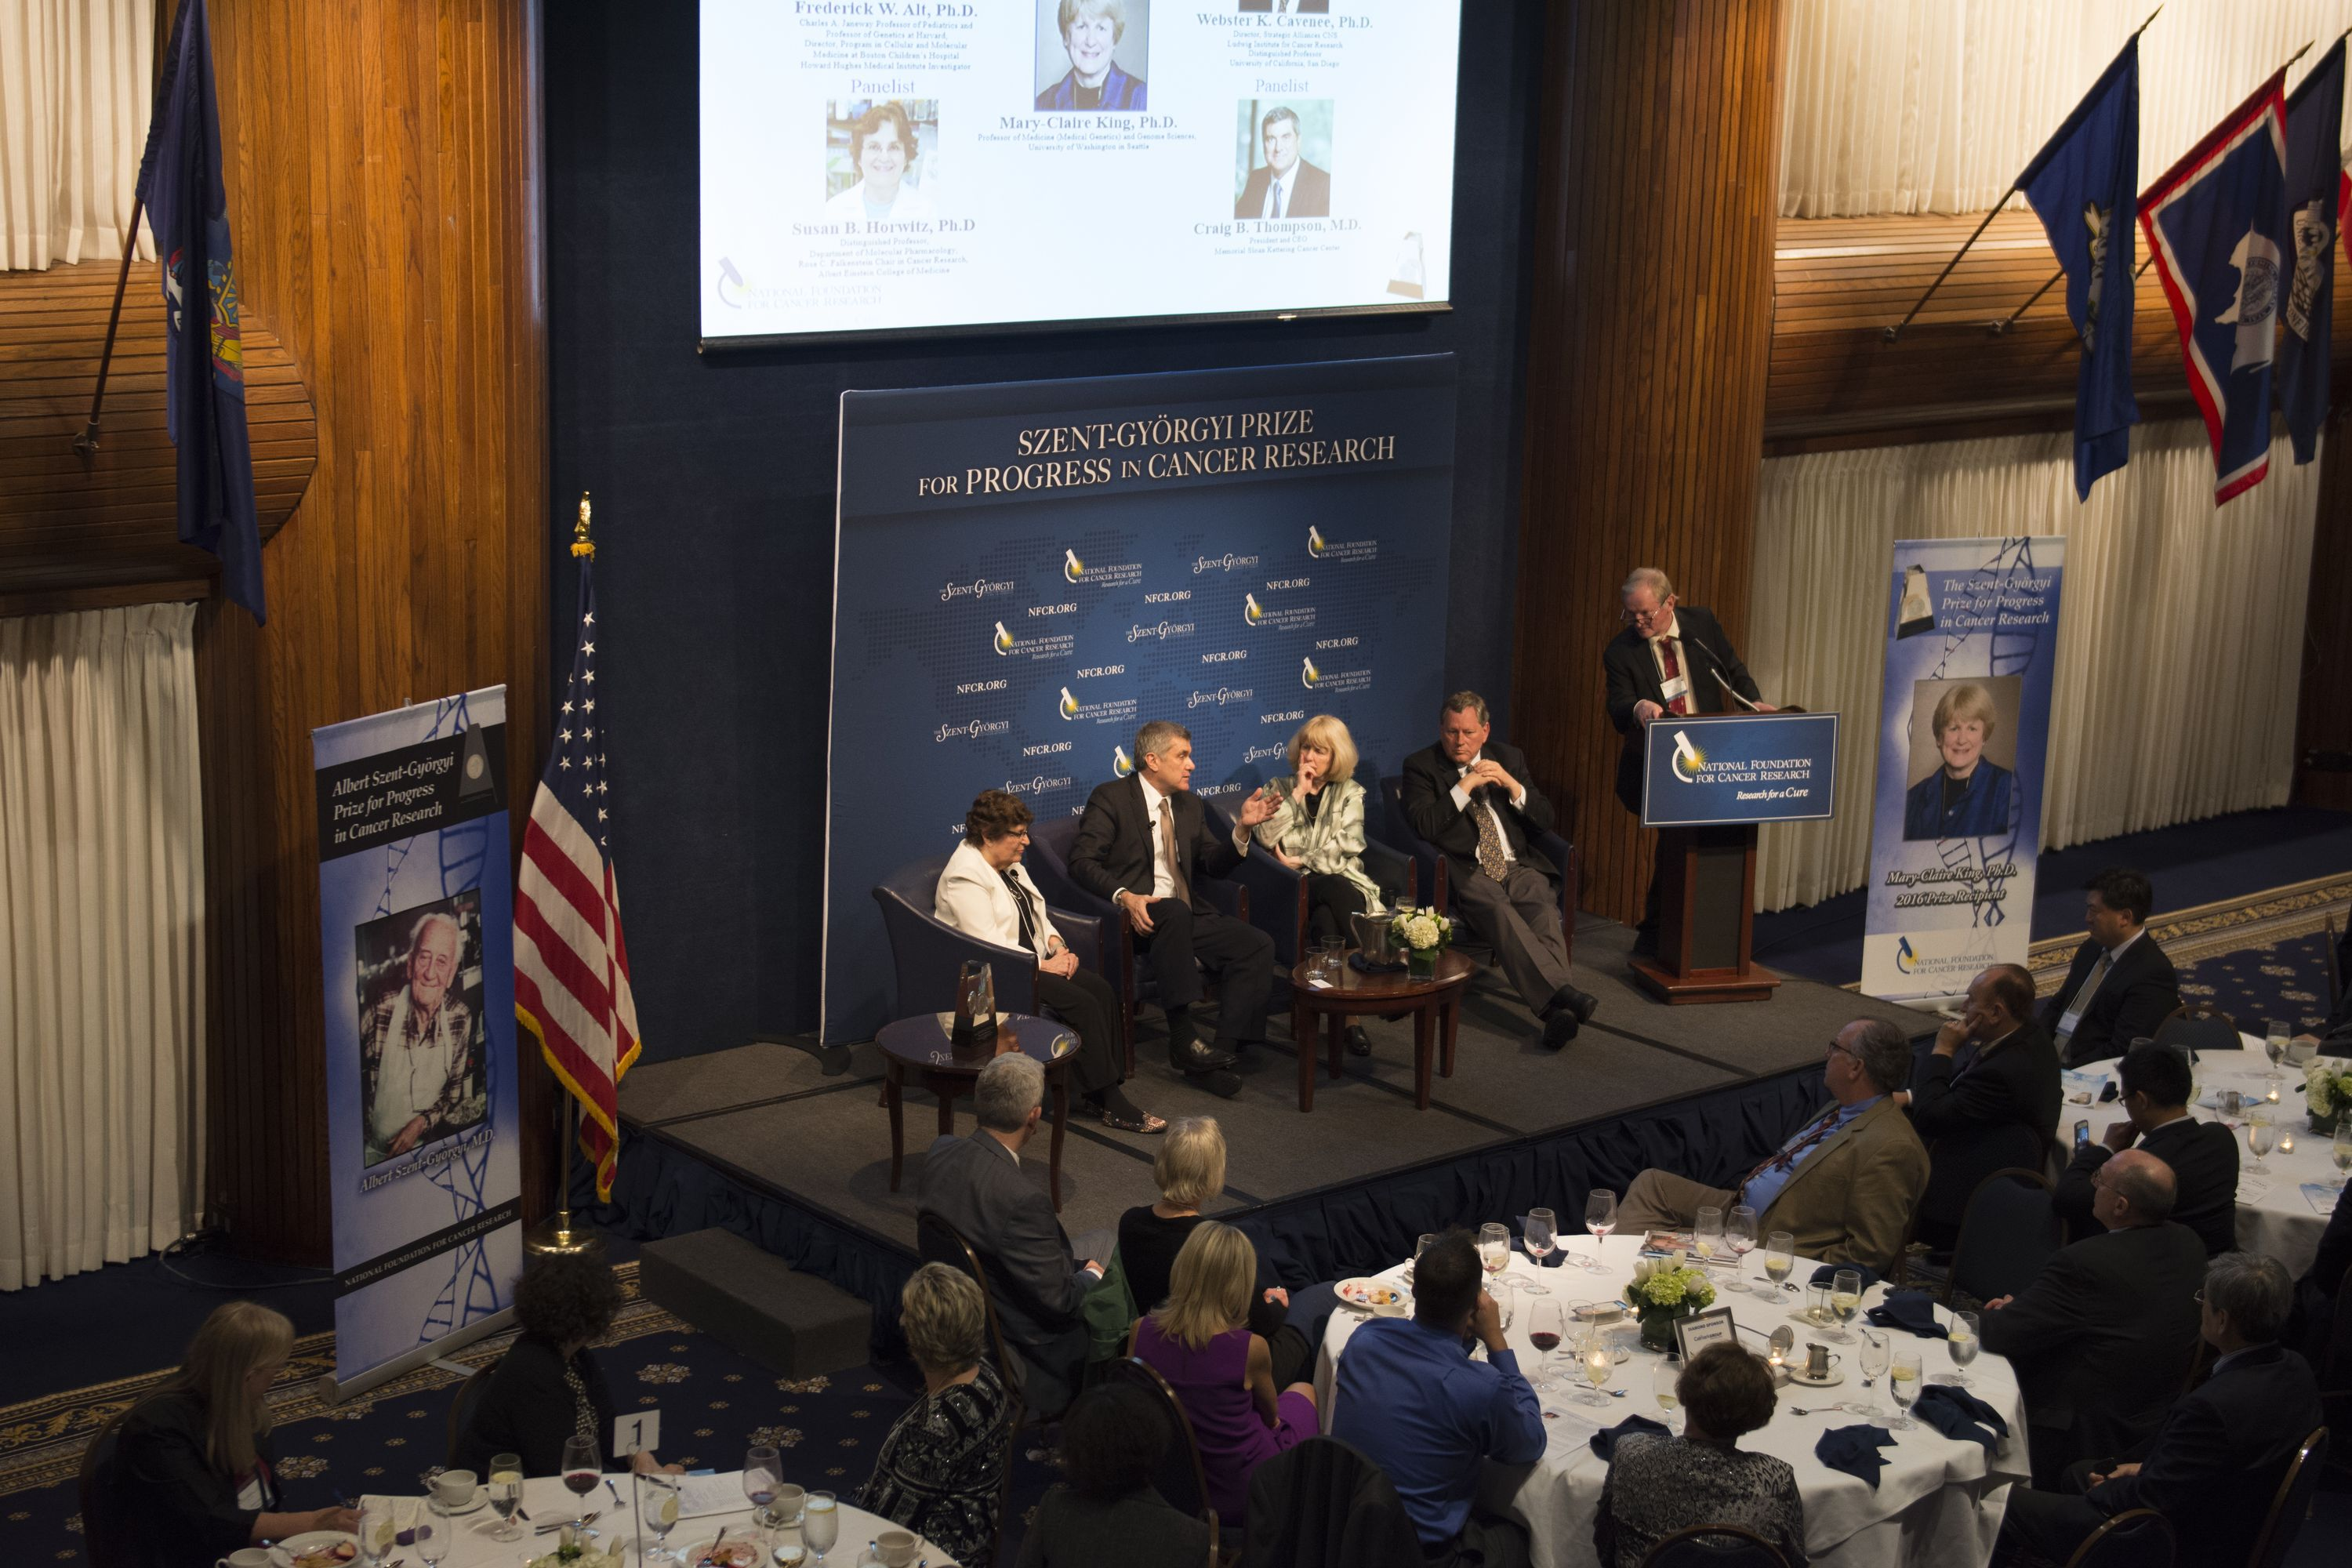 Panel member Memorial Sloan Kettering President and CEO, Dr. Craig Thompson, delivers a thoughtful response to a question from a dinner guest